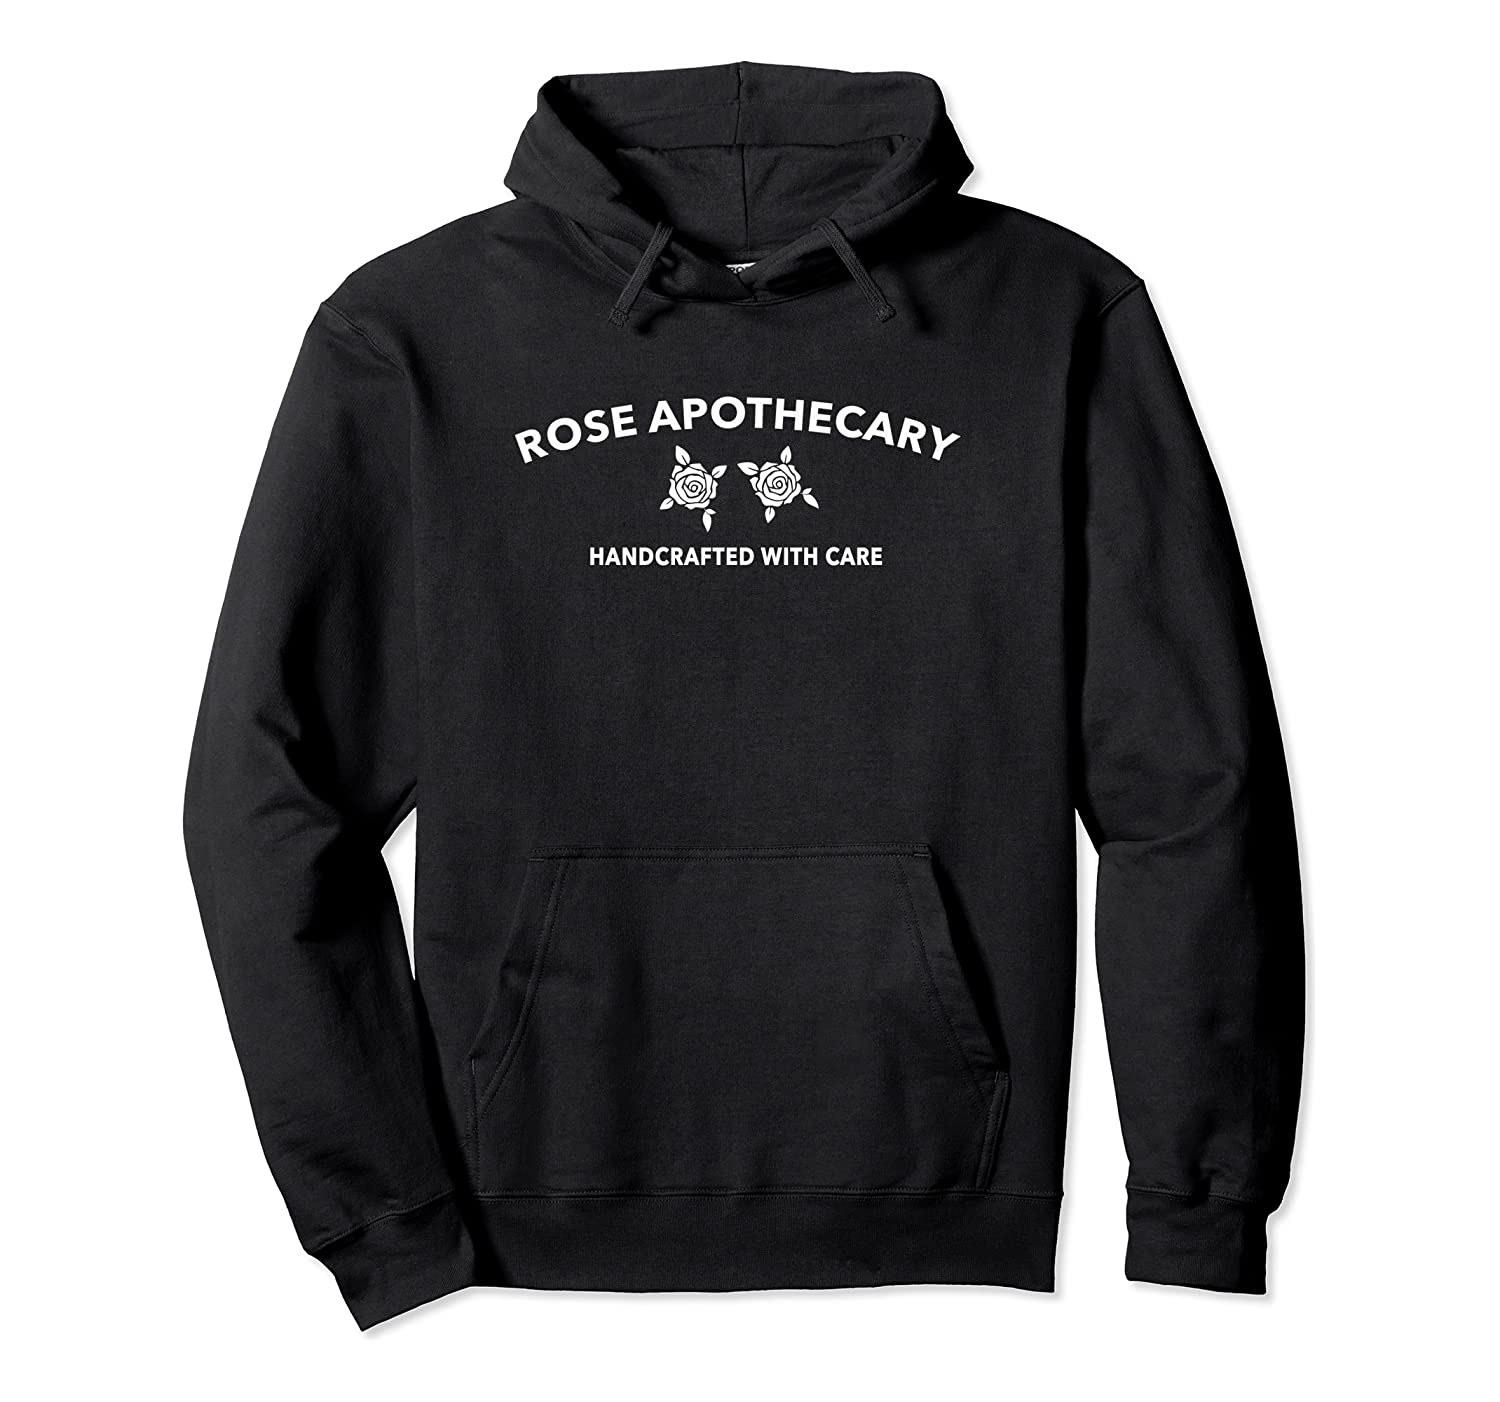 "The black hoodie with two roses and text ""Rose apothecary handcrafted with care"""